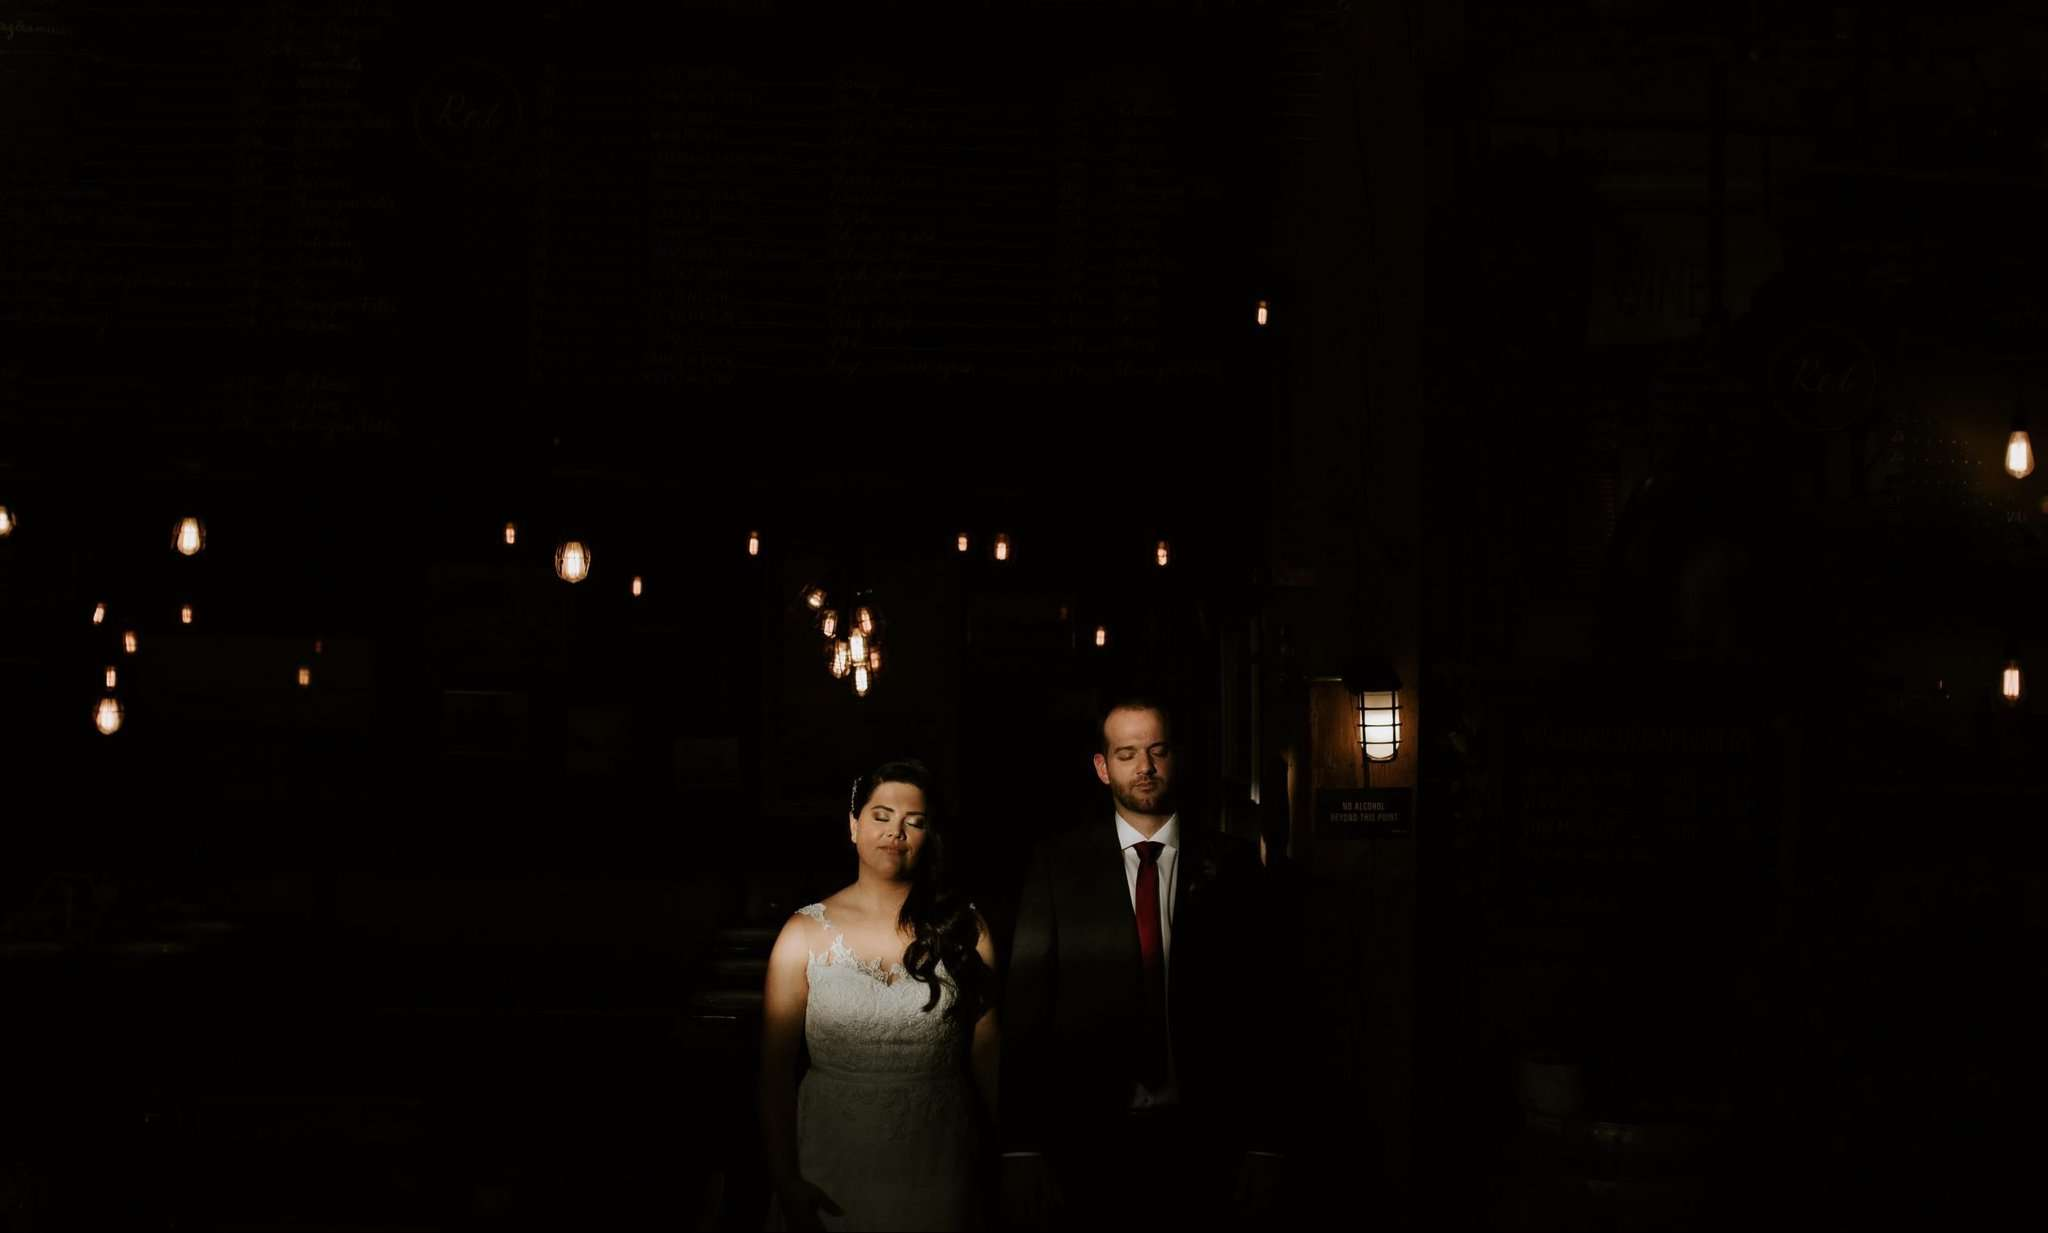 Bride and Groom at their Wedding at the Settlement Building Vancouver.